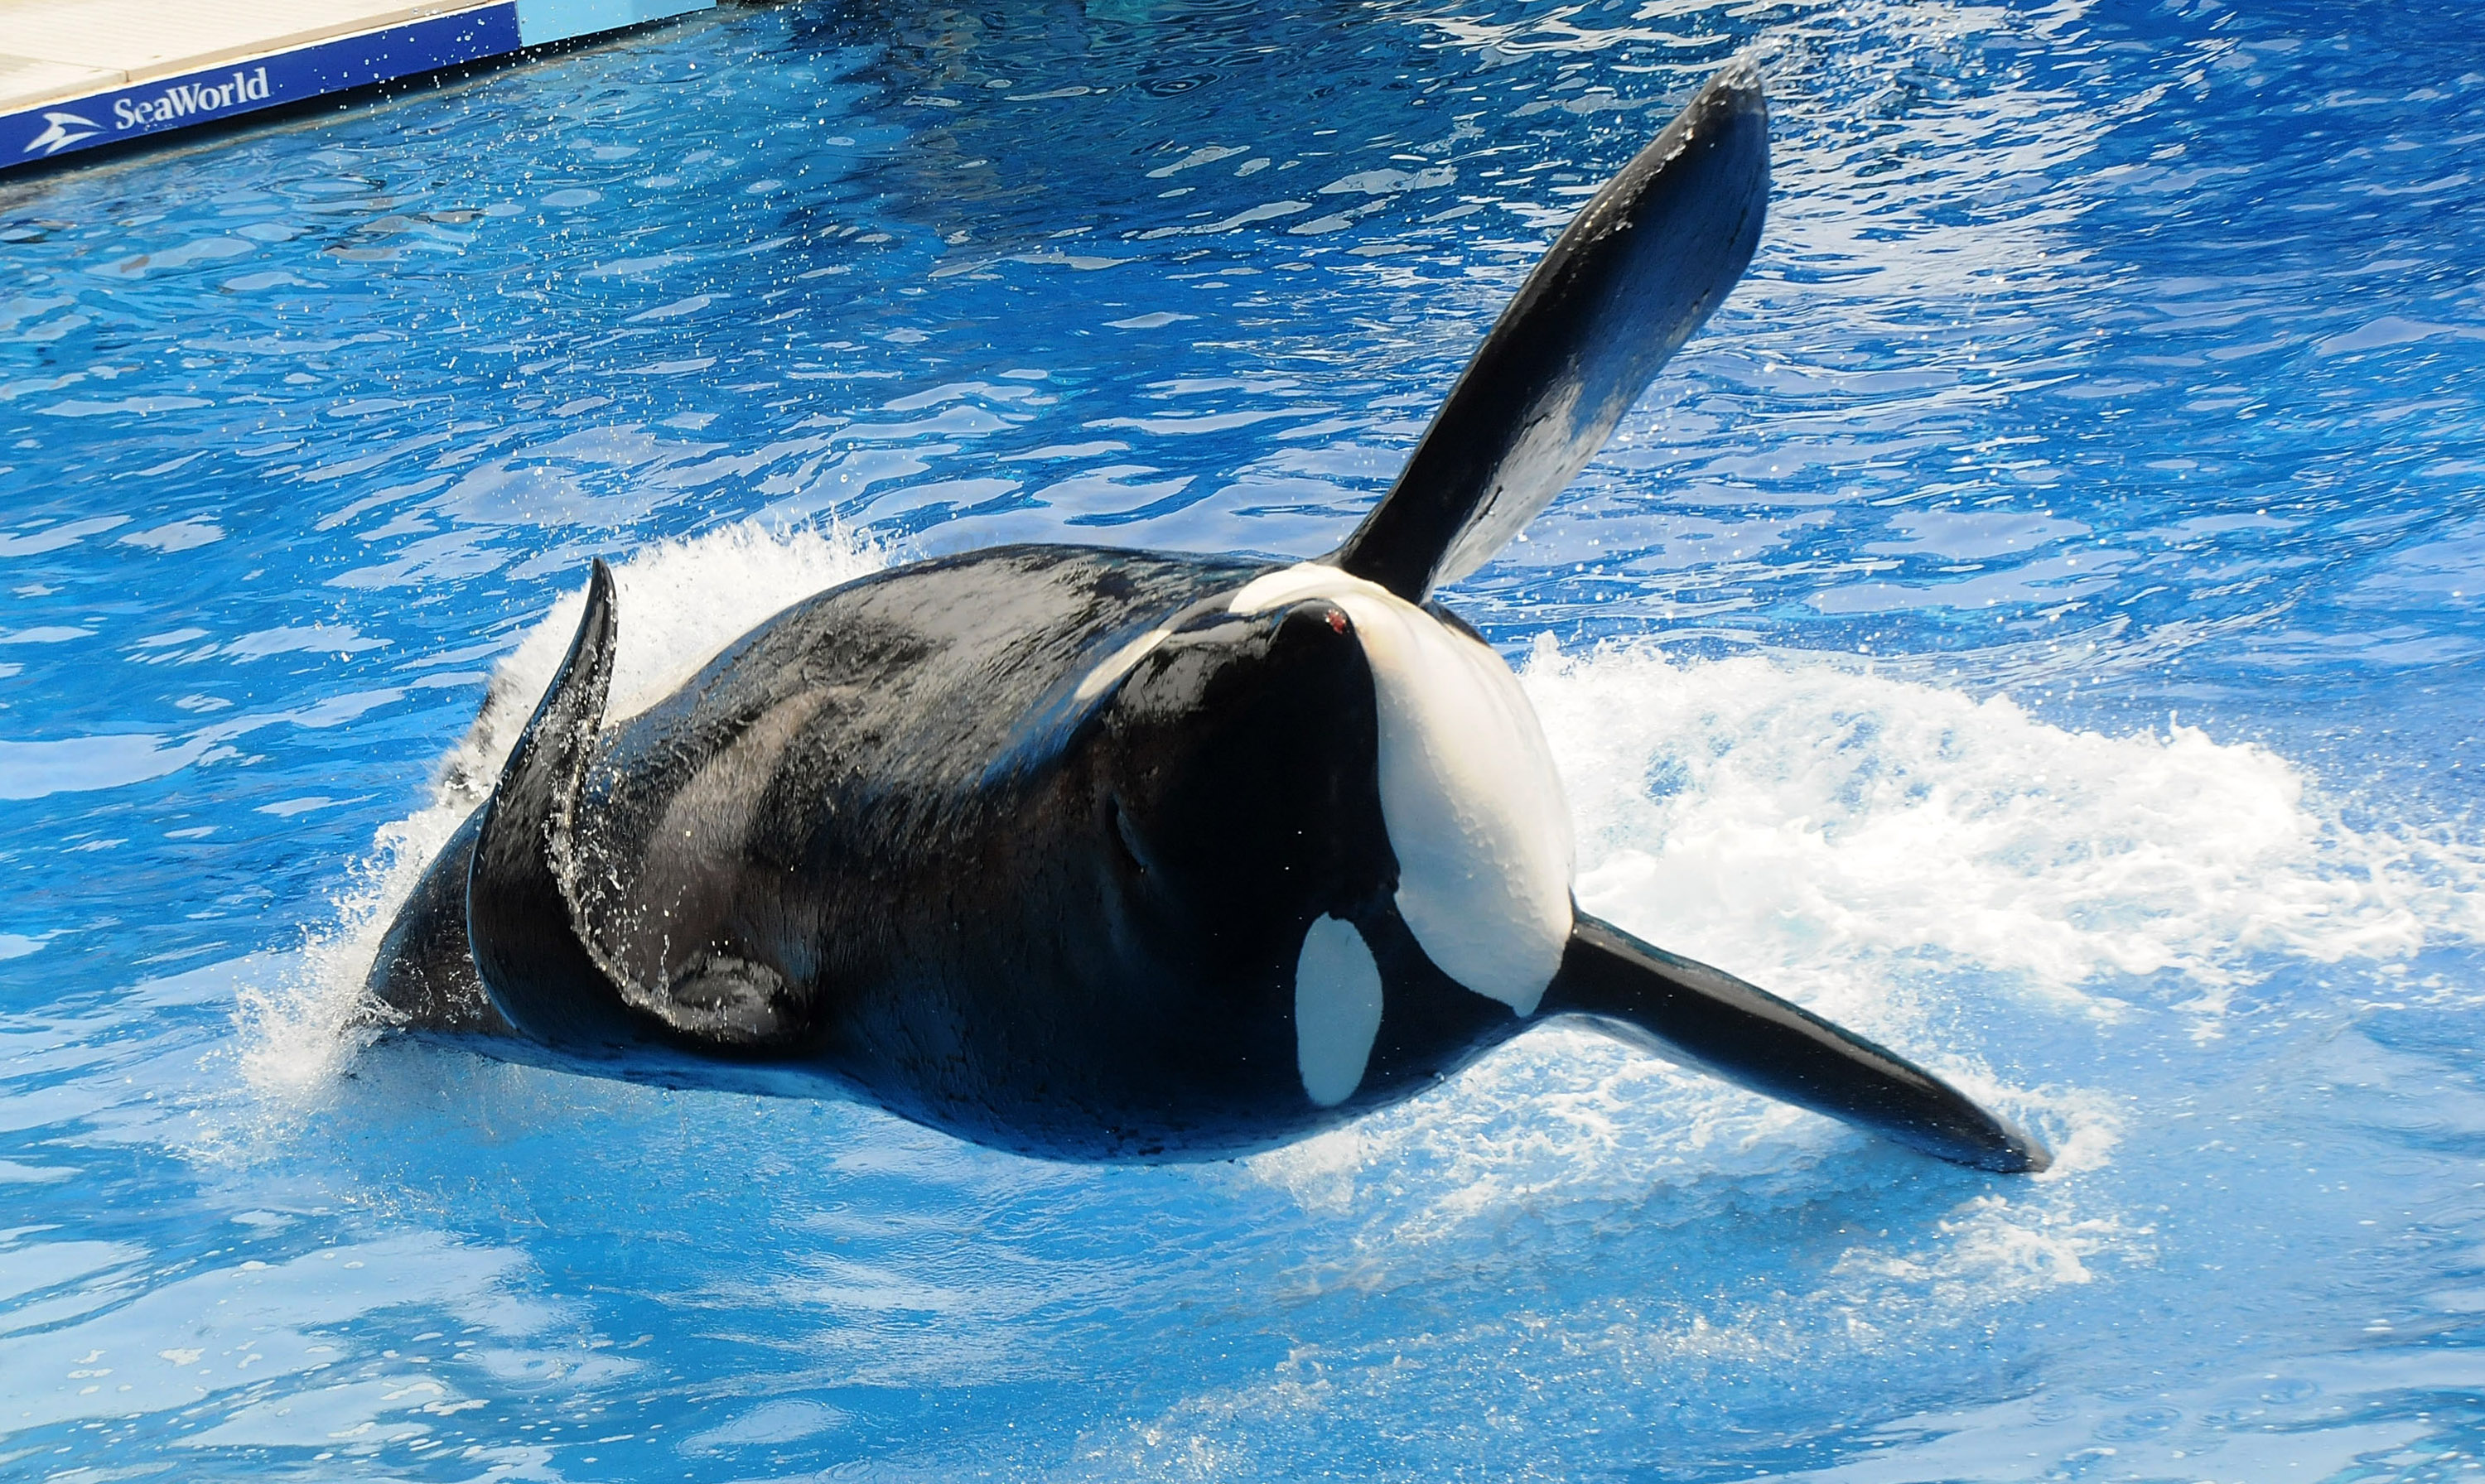 Killer whale  Tilikum  appears during its performance in its show  Believe  at Sea World in Orlando, Florida, on March 30, 2011.